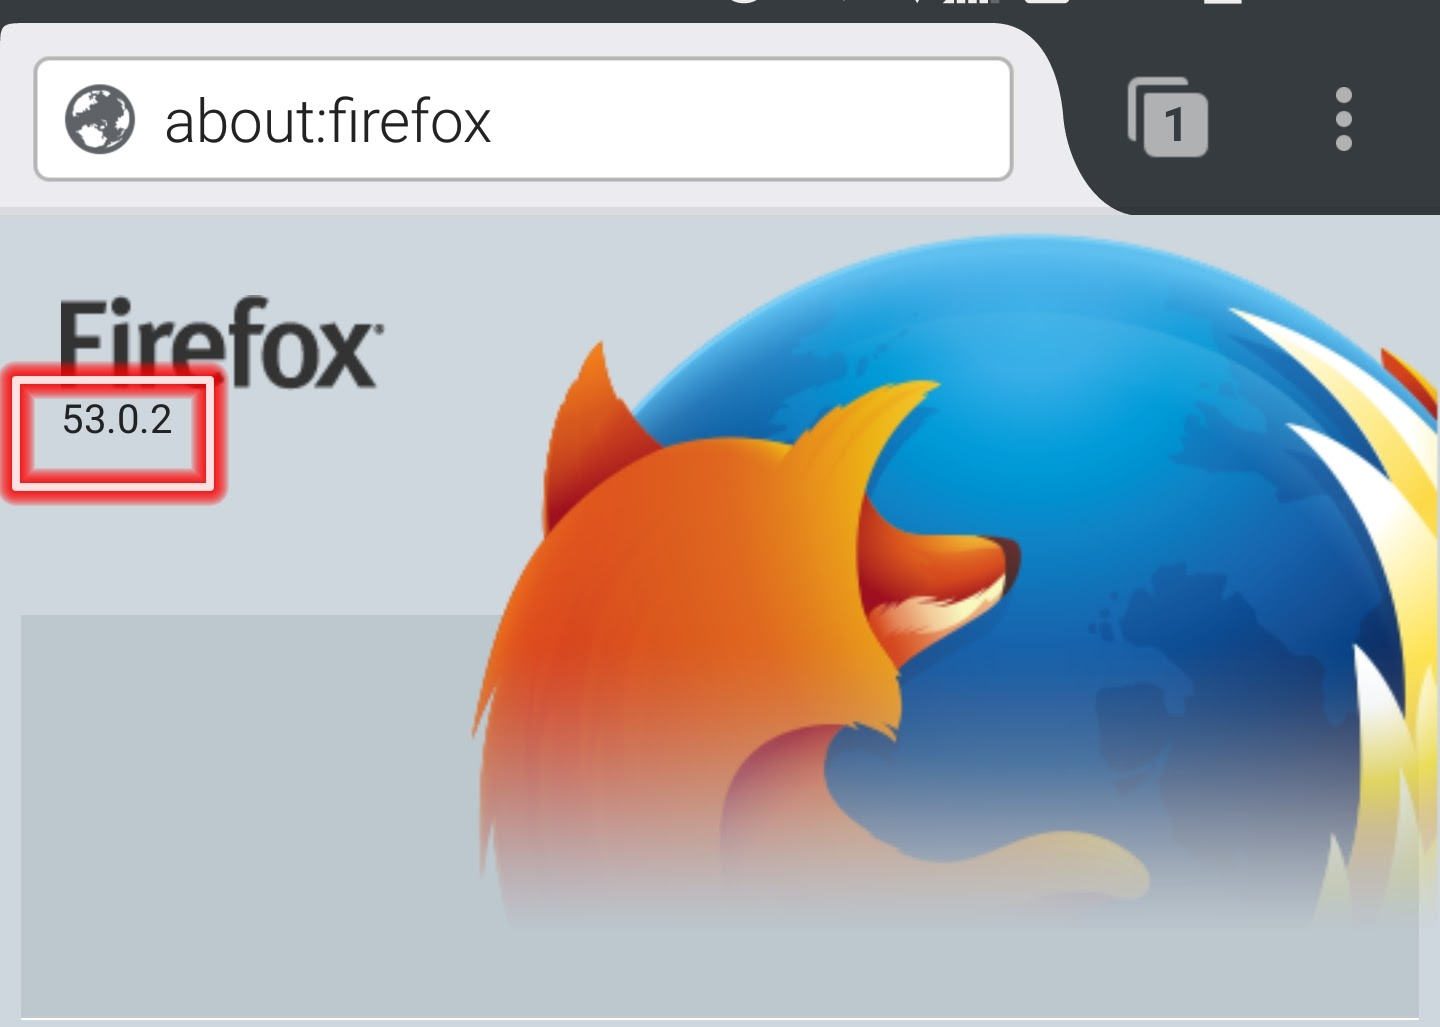 Firefox on Android shows 53.0.2 as the version number, instead of the expected 54